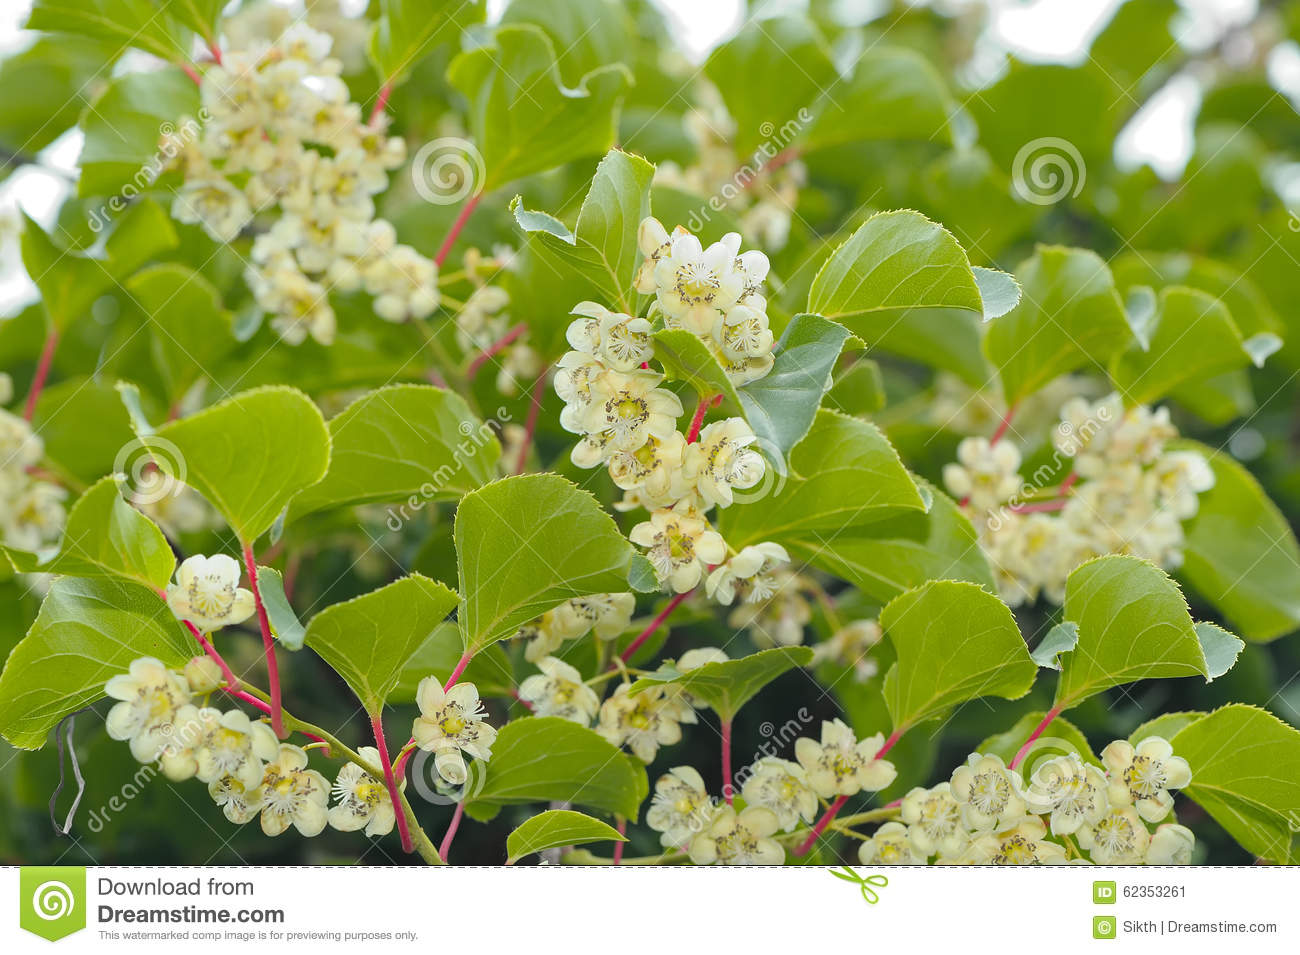 actinidia hardy kiwi plant with flowers stock image image of flora bush 62353261. Black Bedroom Furniture Sets. Home Design Ideas